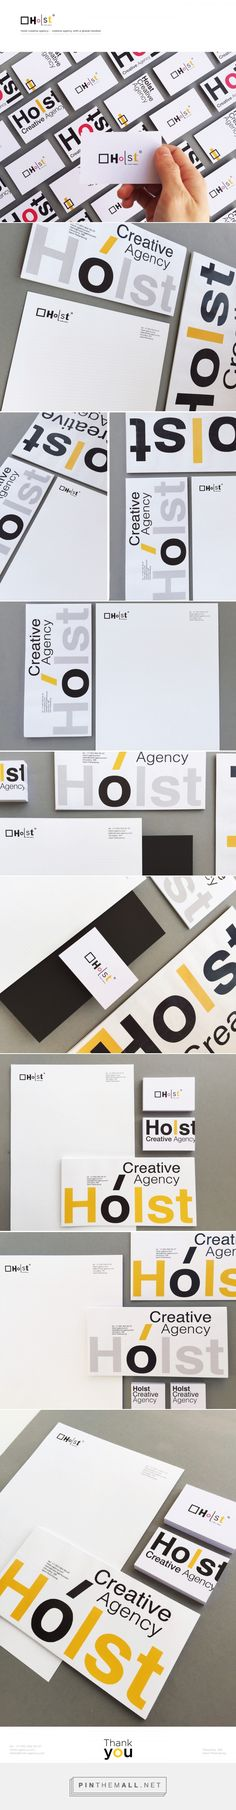 Holst Creative Agency Branding by Erik Musin | Fivestar Branding Agency – Design and Branding Agency & Curated Inspiration Gallery